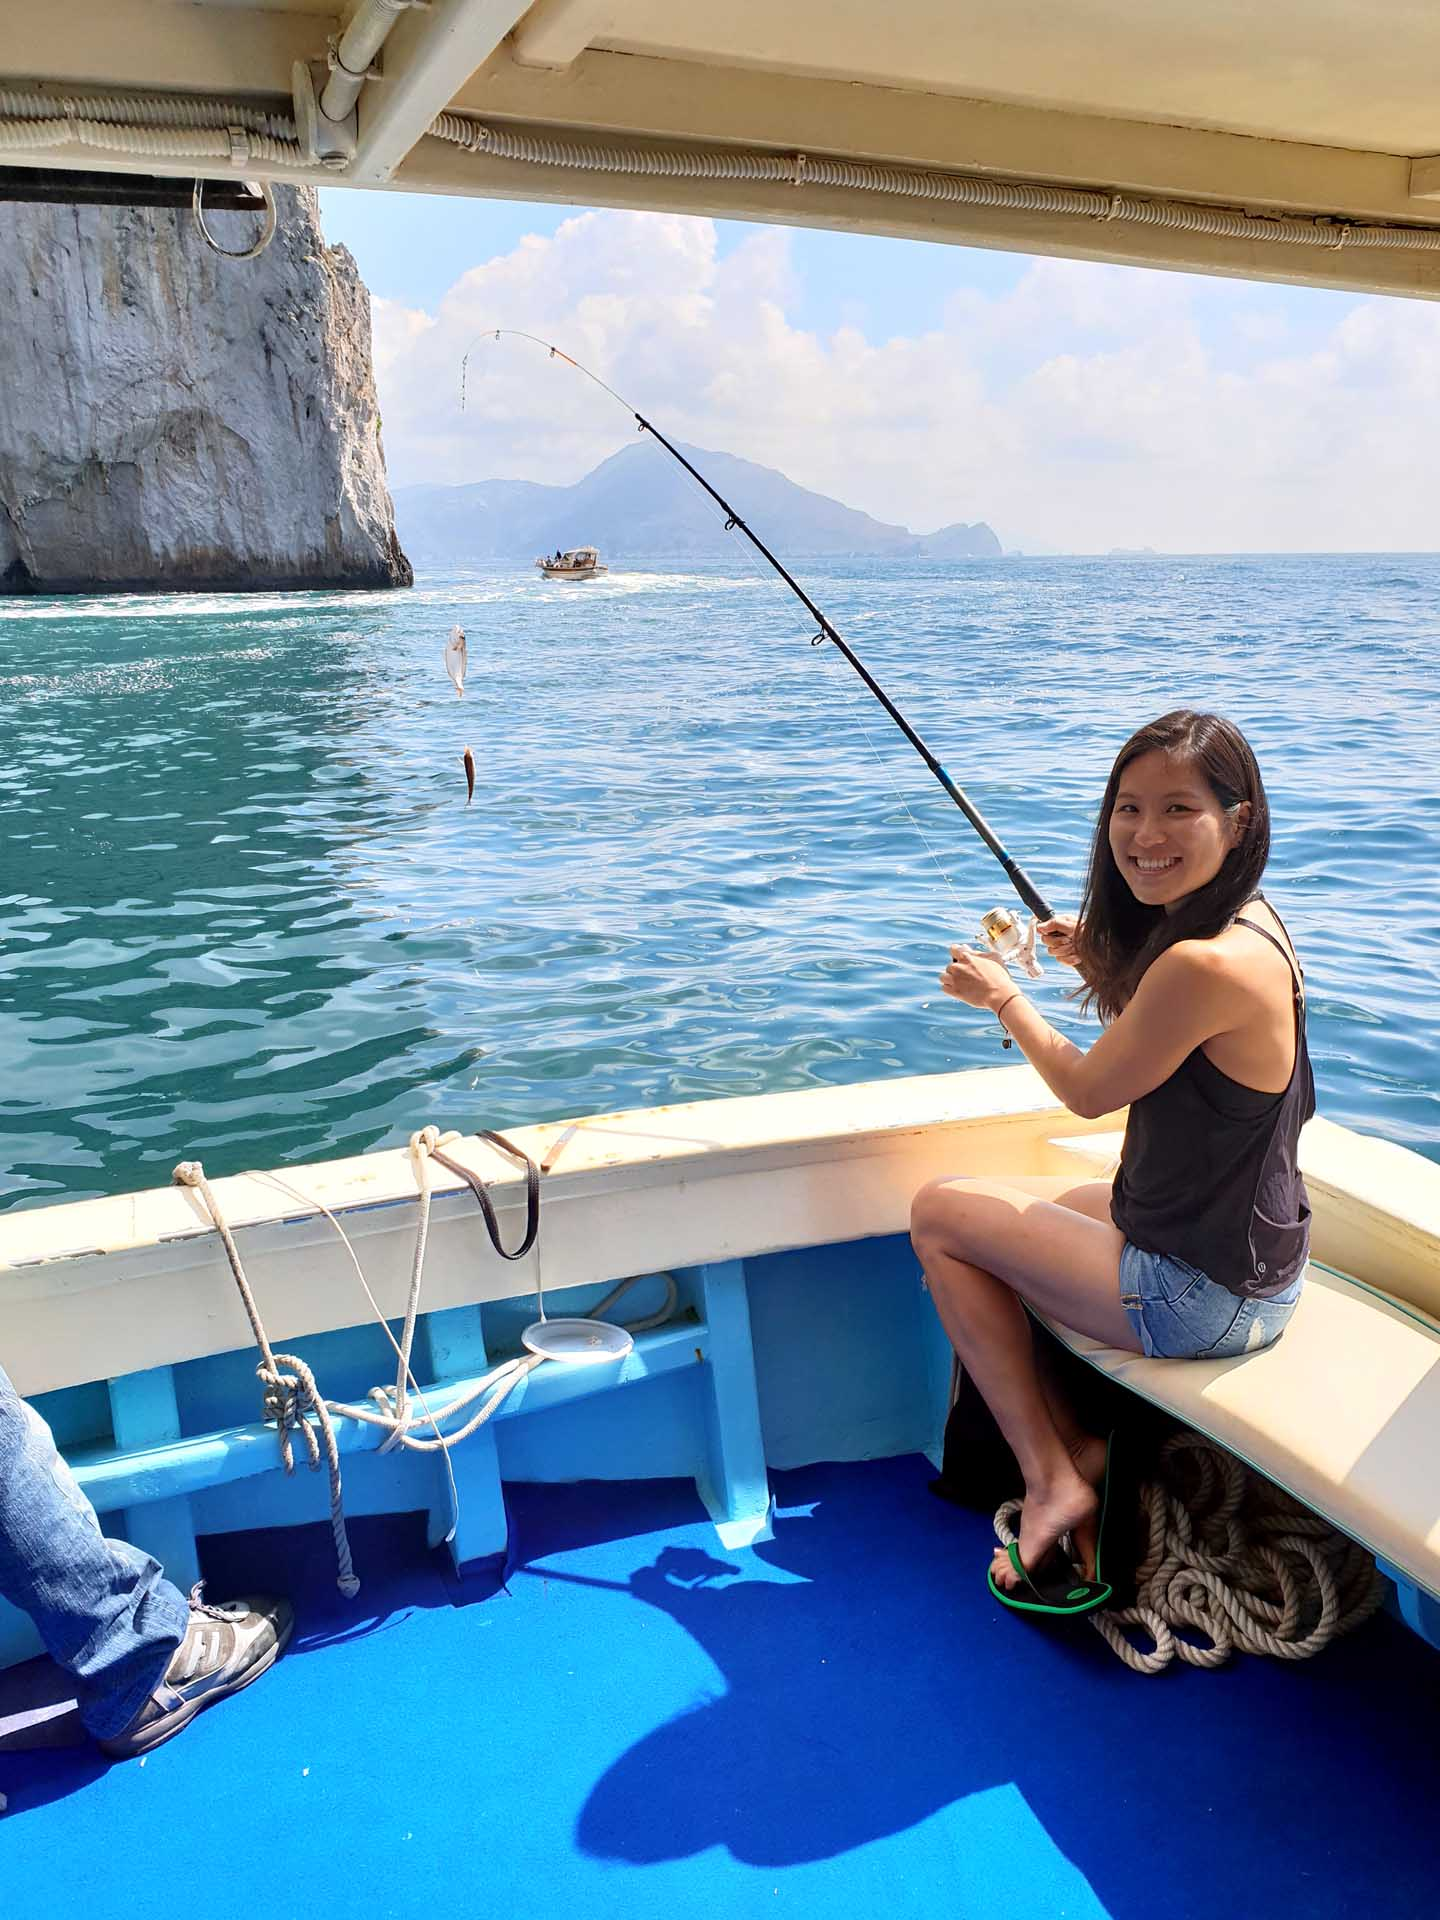 Fishing tourism on boat in Sorrento coast